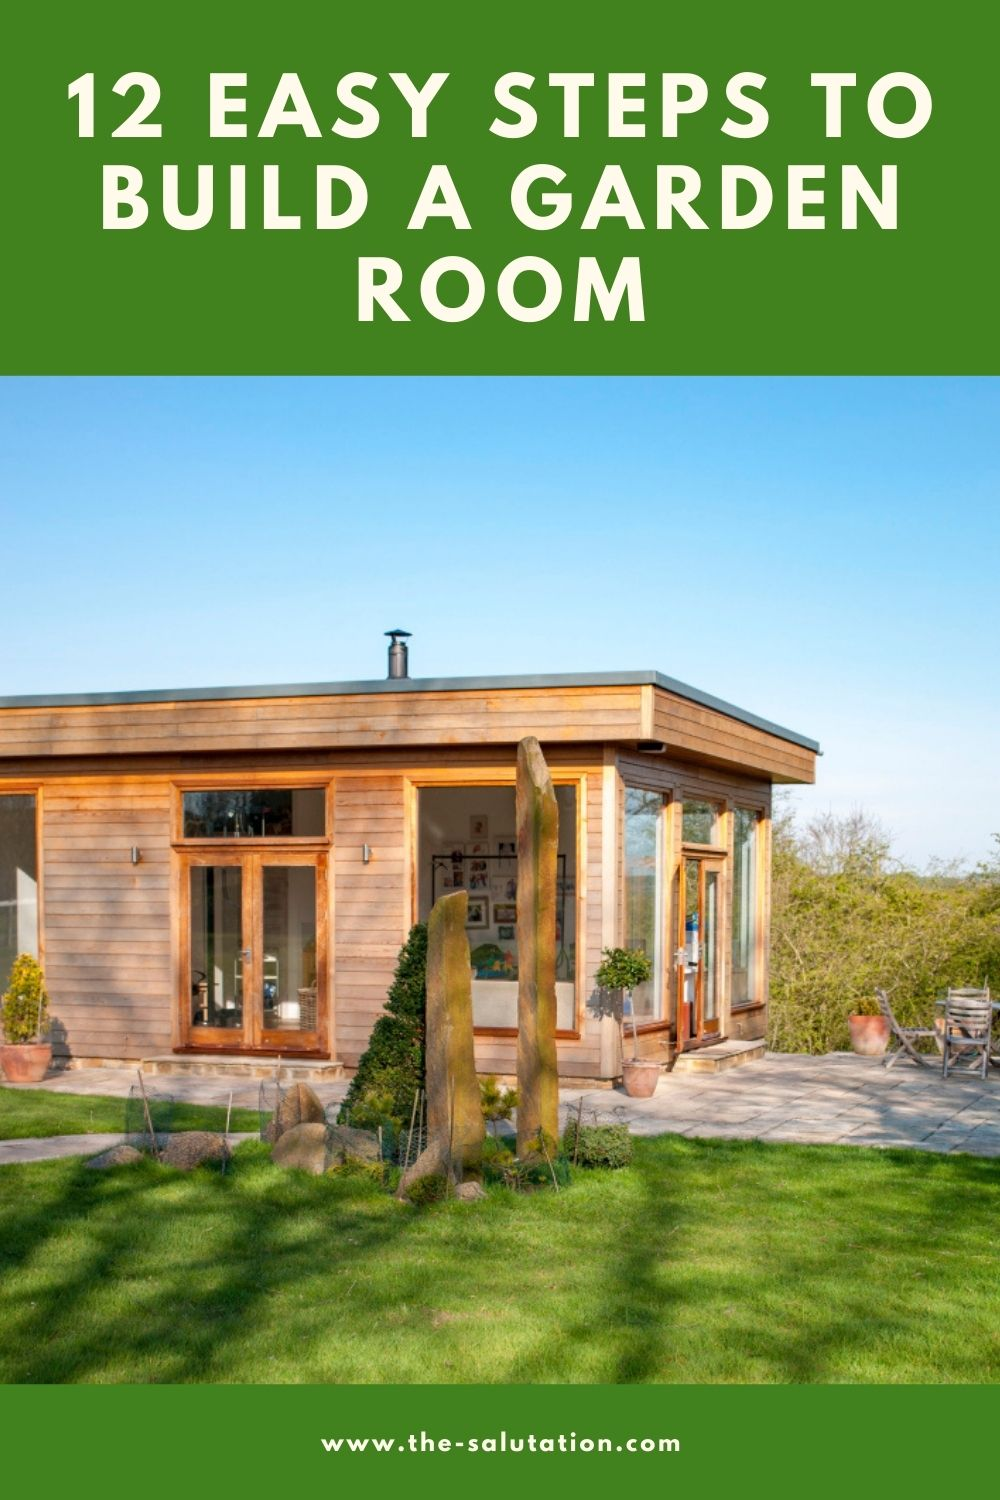 12 Easy Steps to Build a Garden Room 2